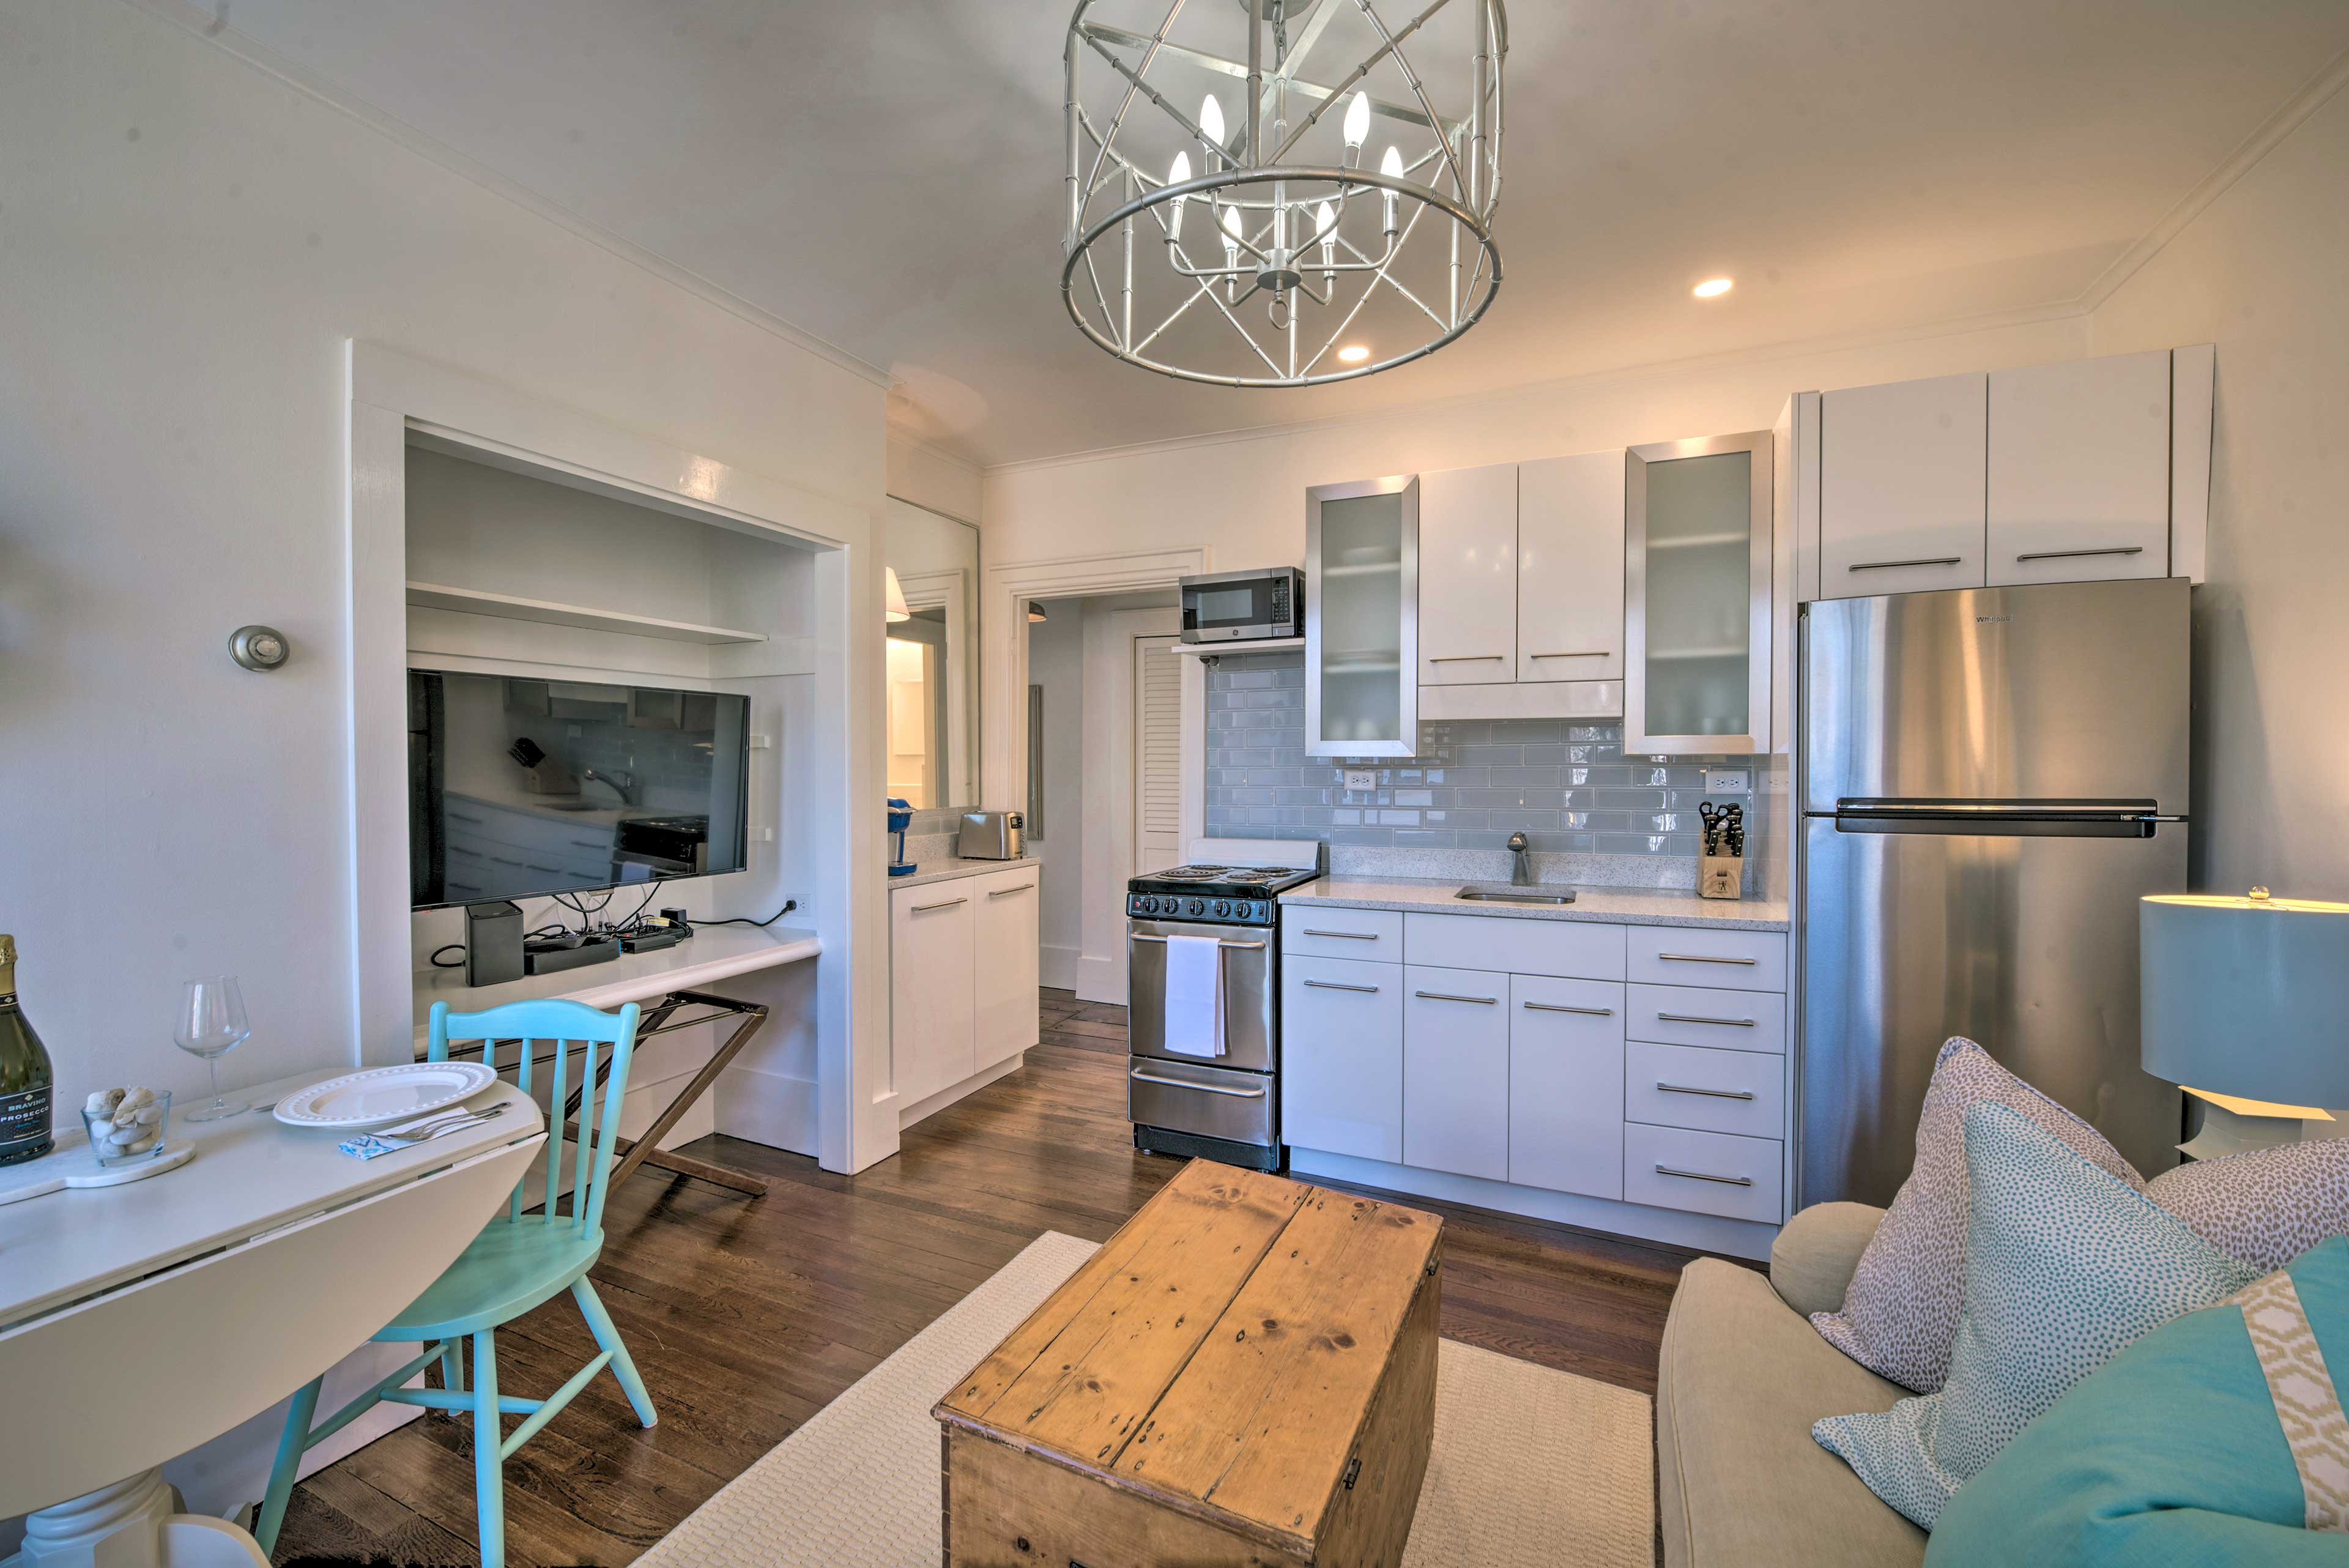 Plan a beach retreat and stay at this Nantucket vacation rental condo.